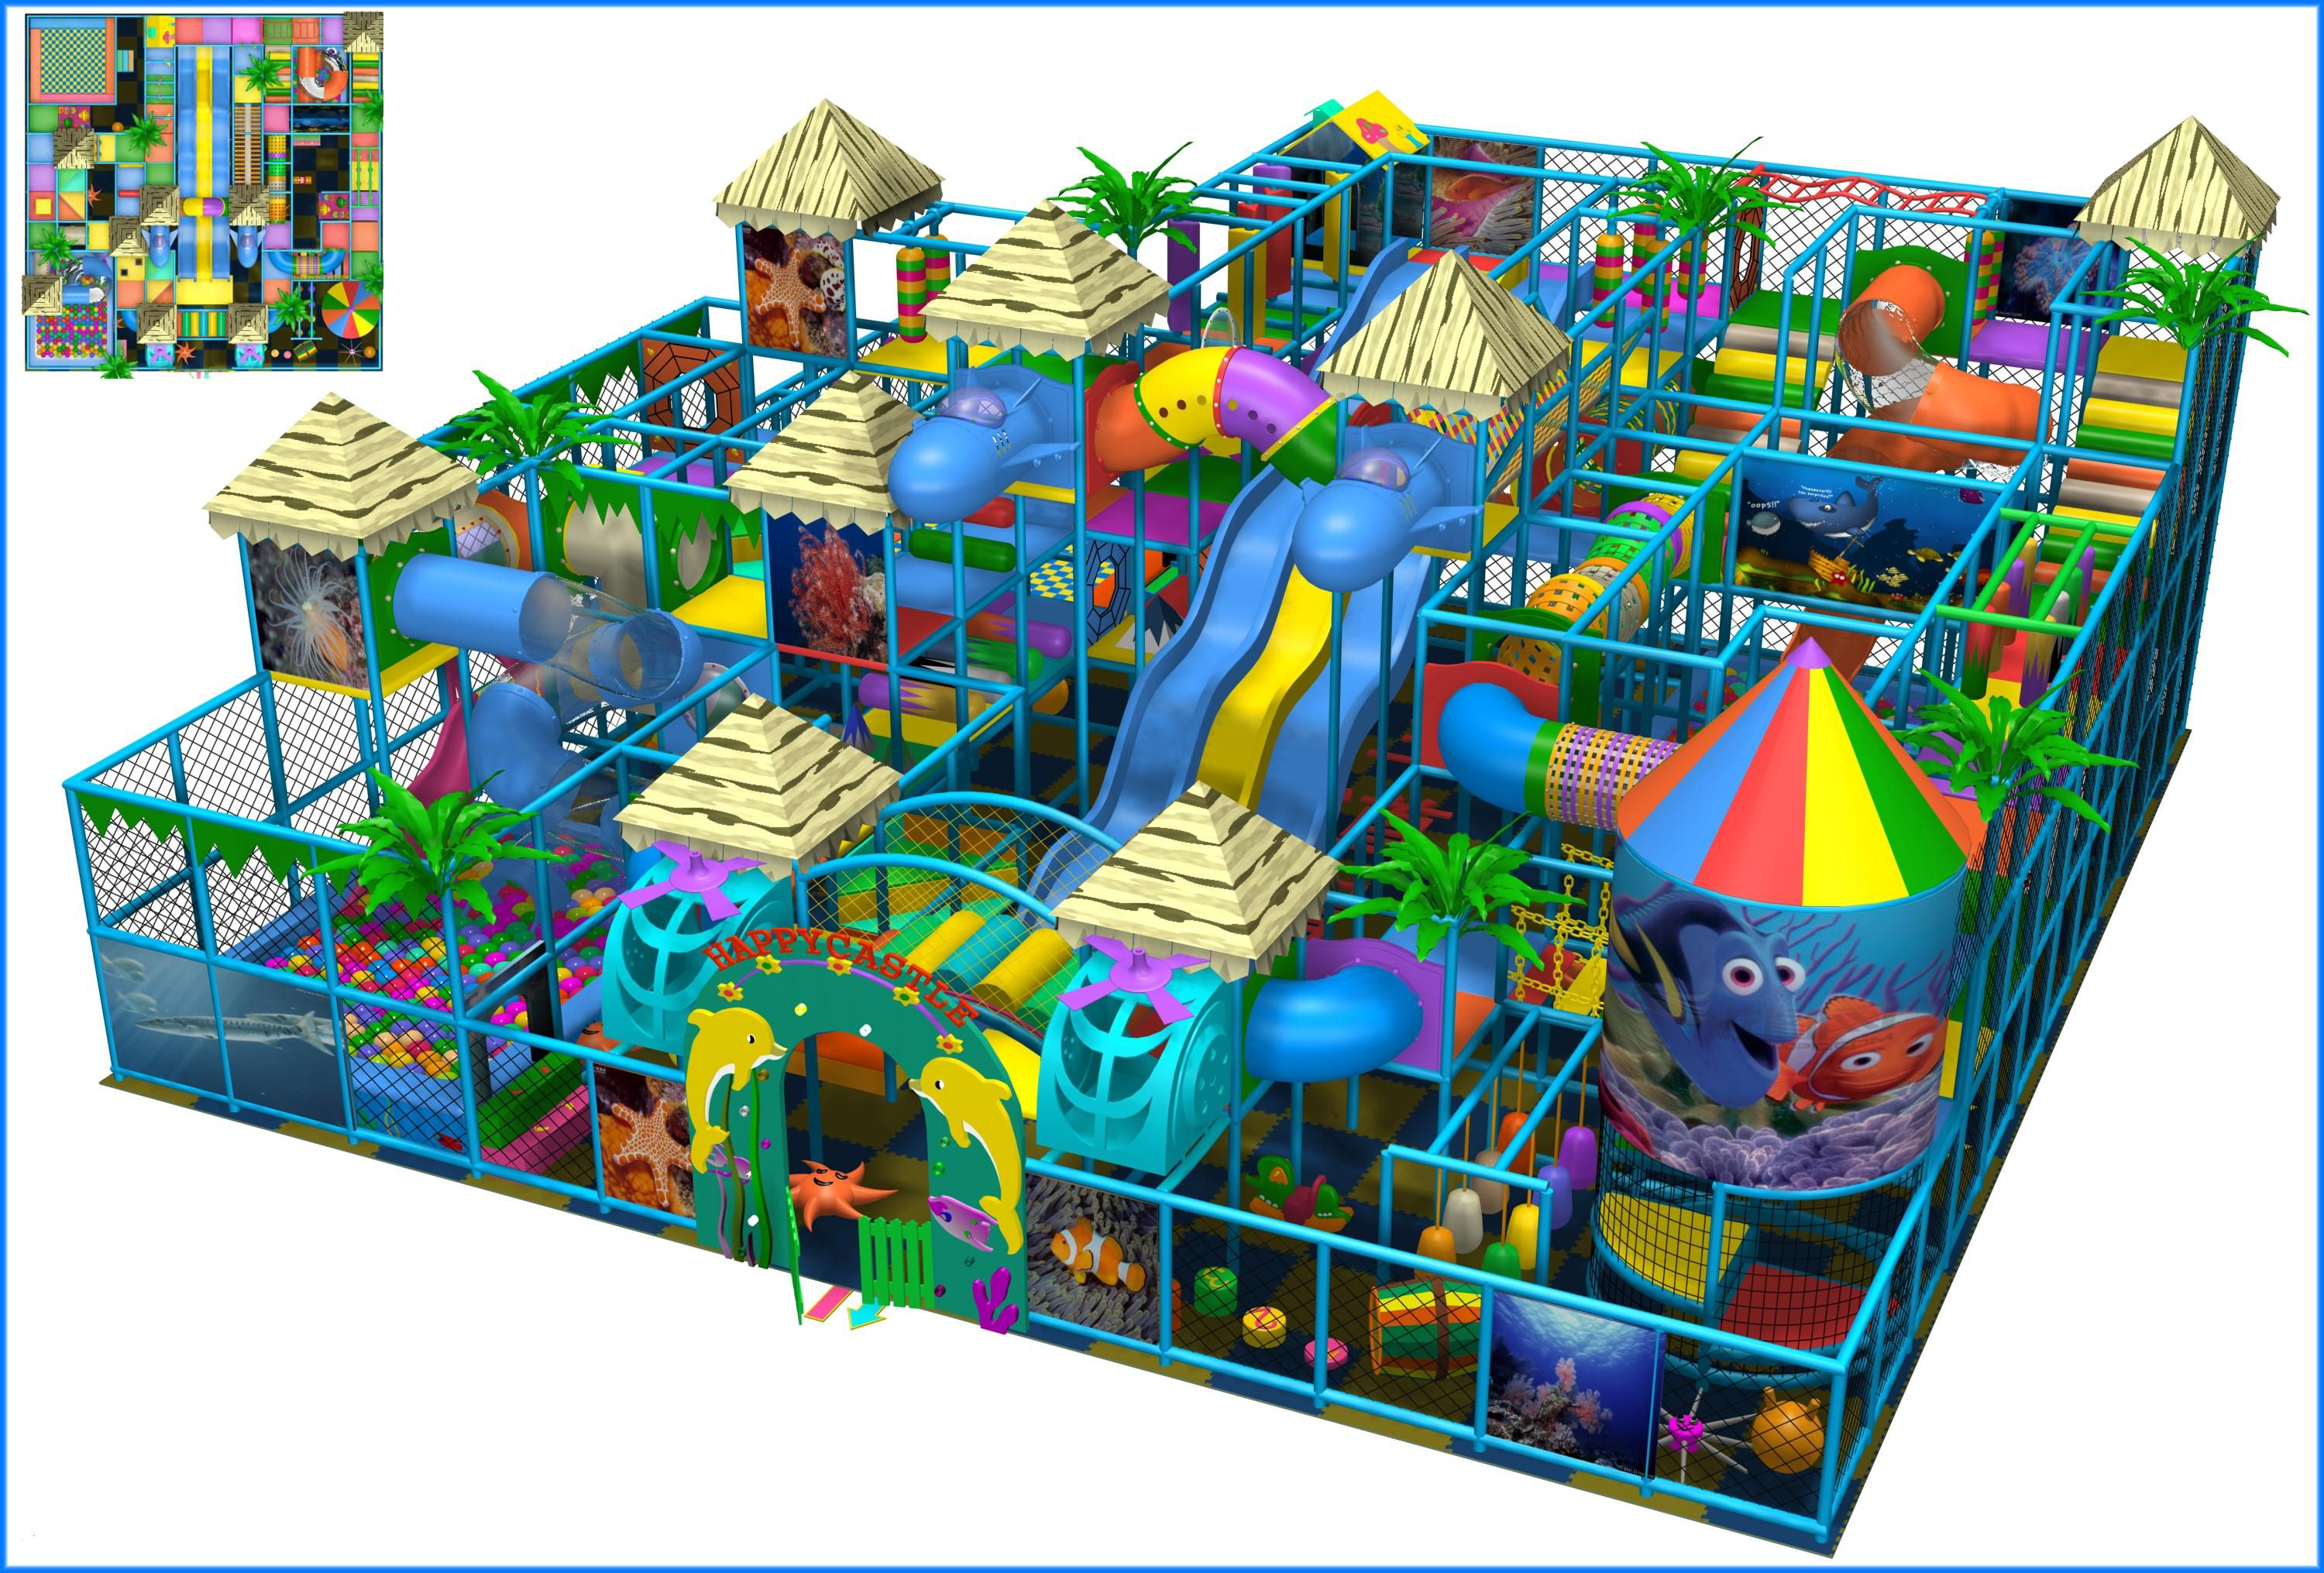 18 3000 2031 cat castle pinterest for Indoor fun for kids near me